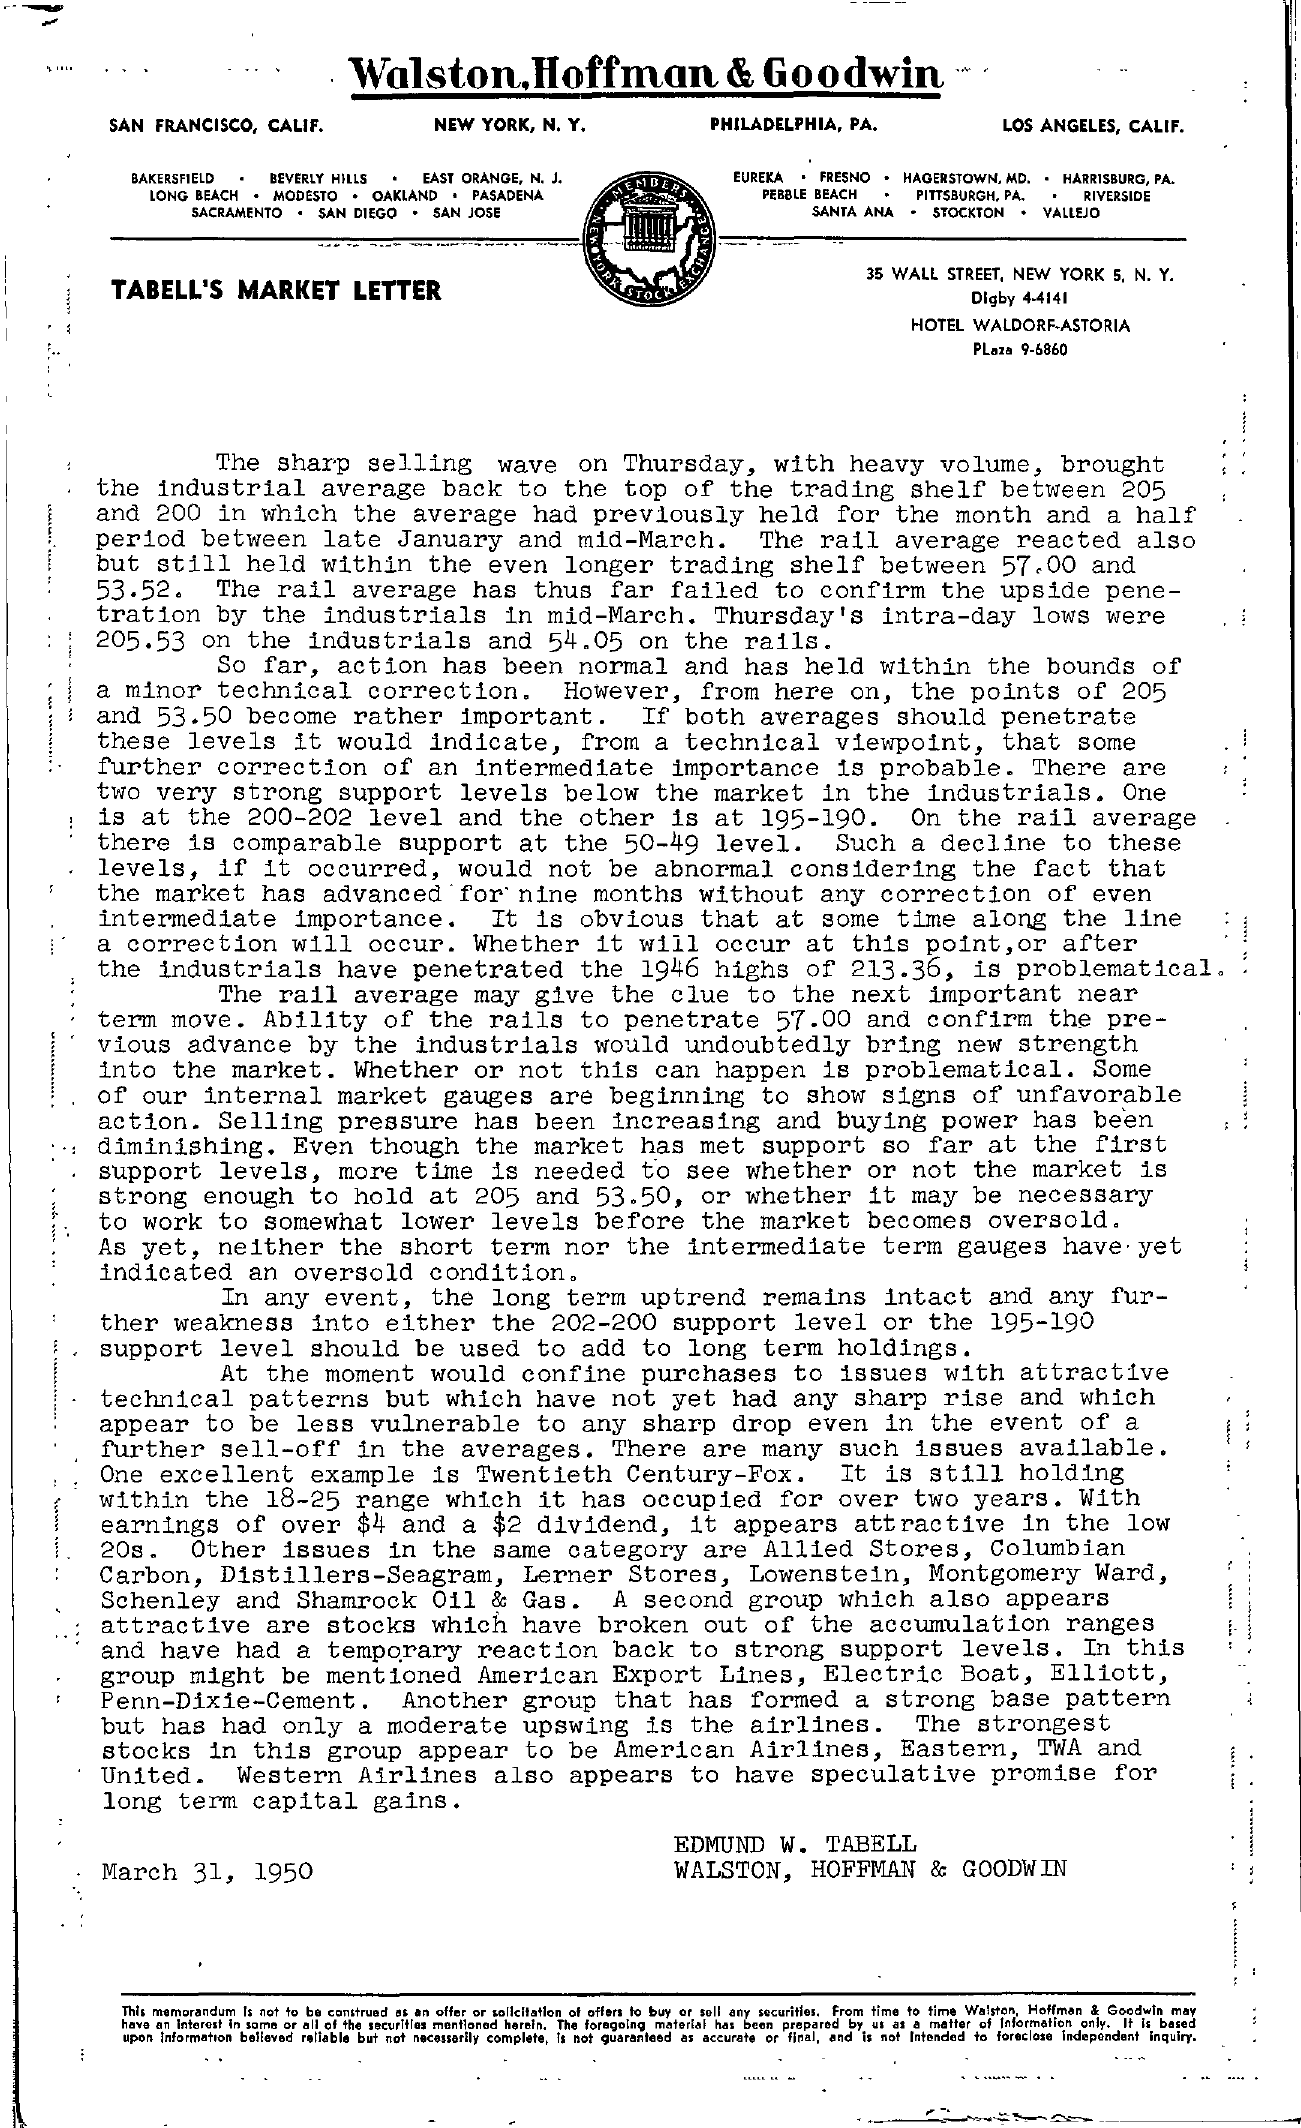 Tabell's Market Letter - March 31, 1950